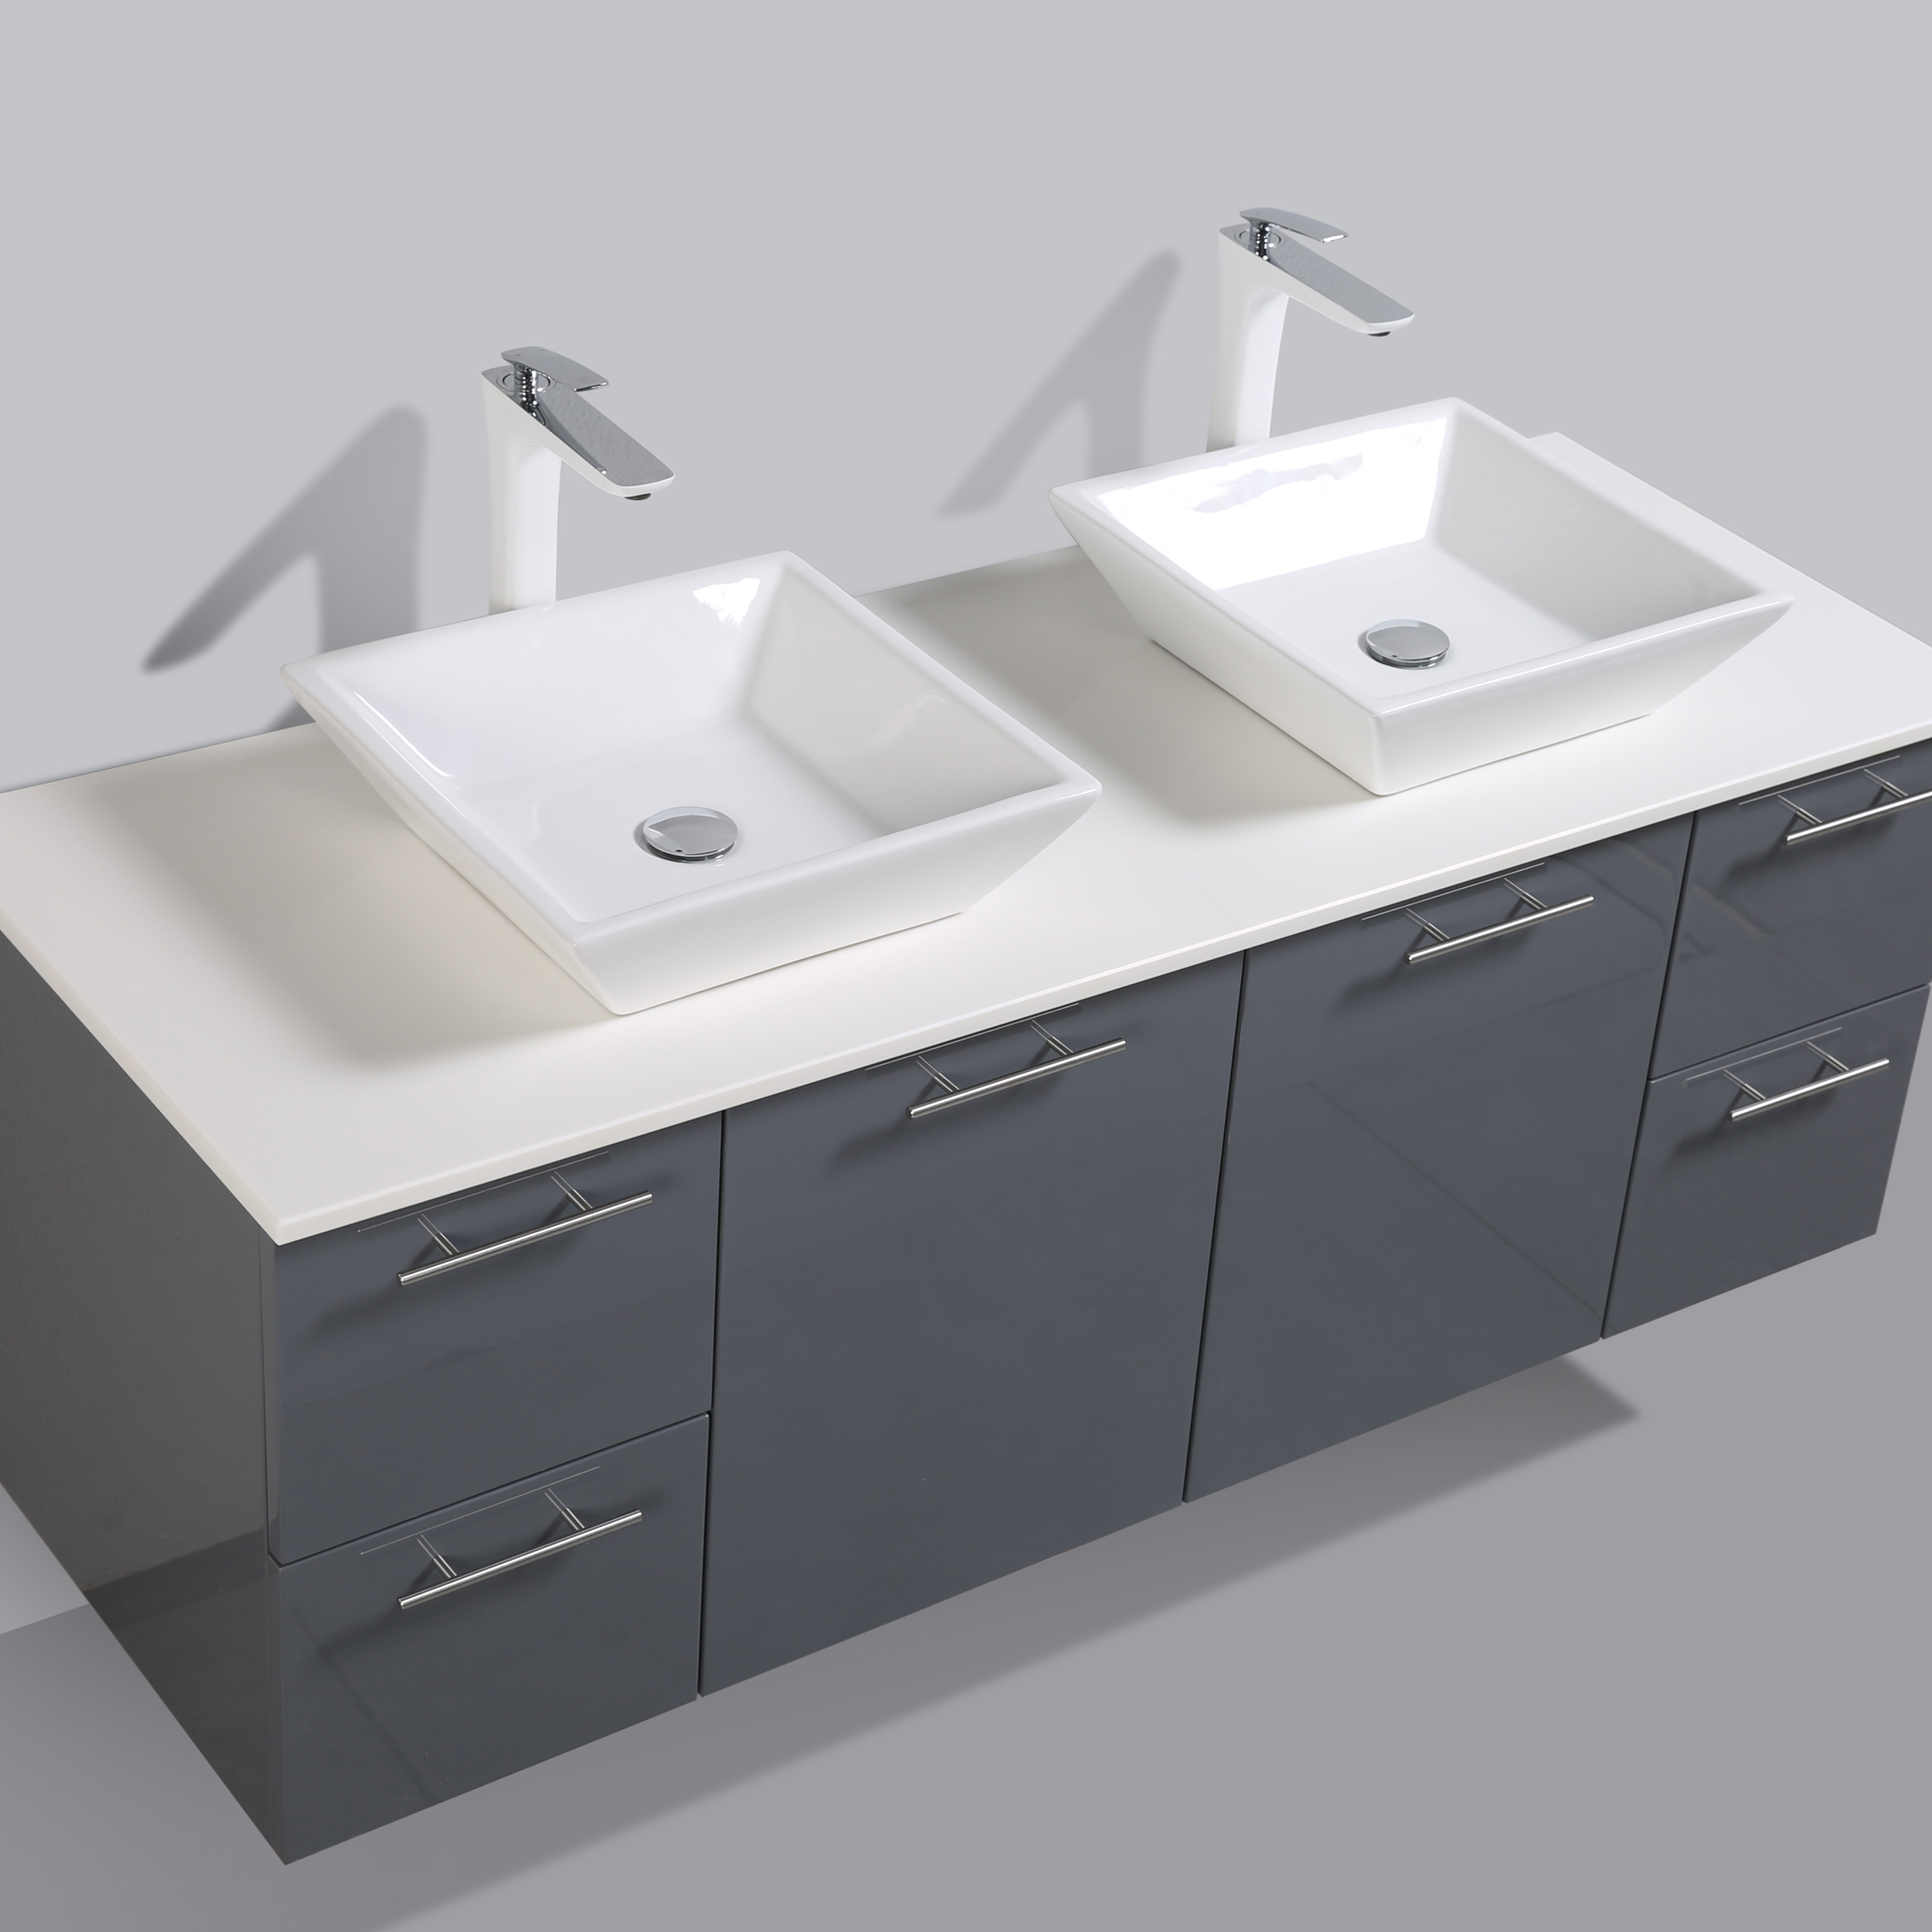 Eviva Luxury 72 Inch Gray Bathroom Vanity With Glassos Top